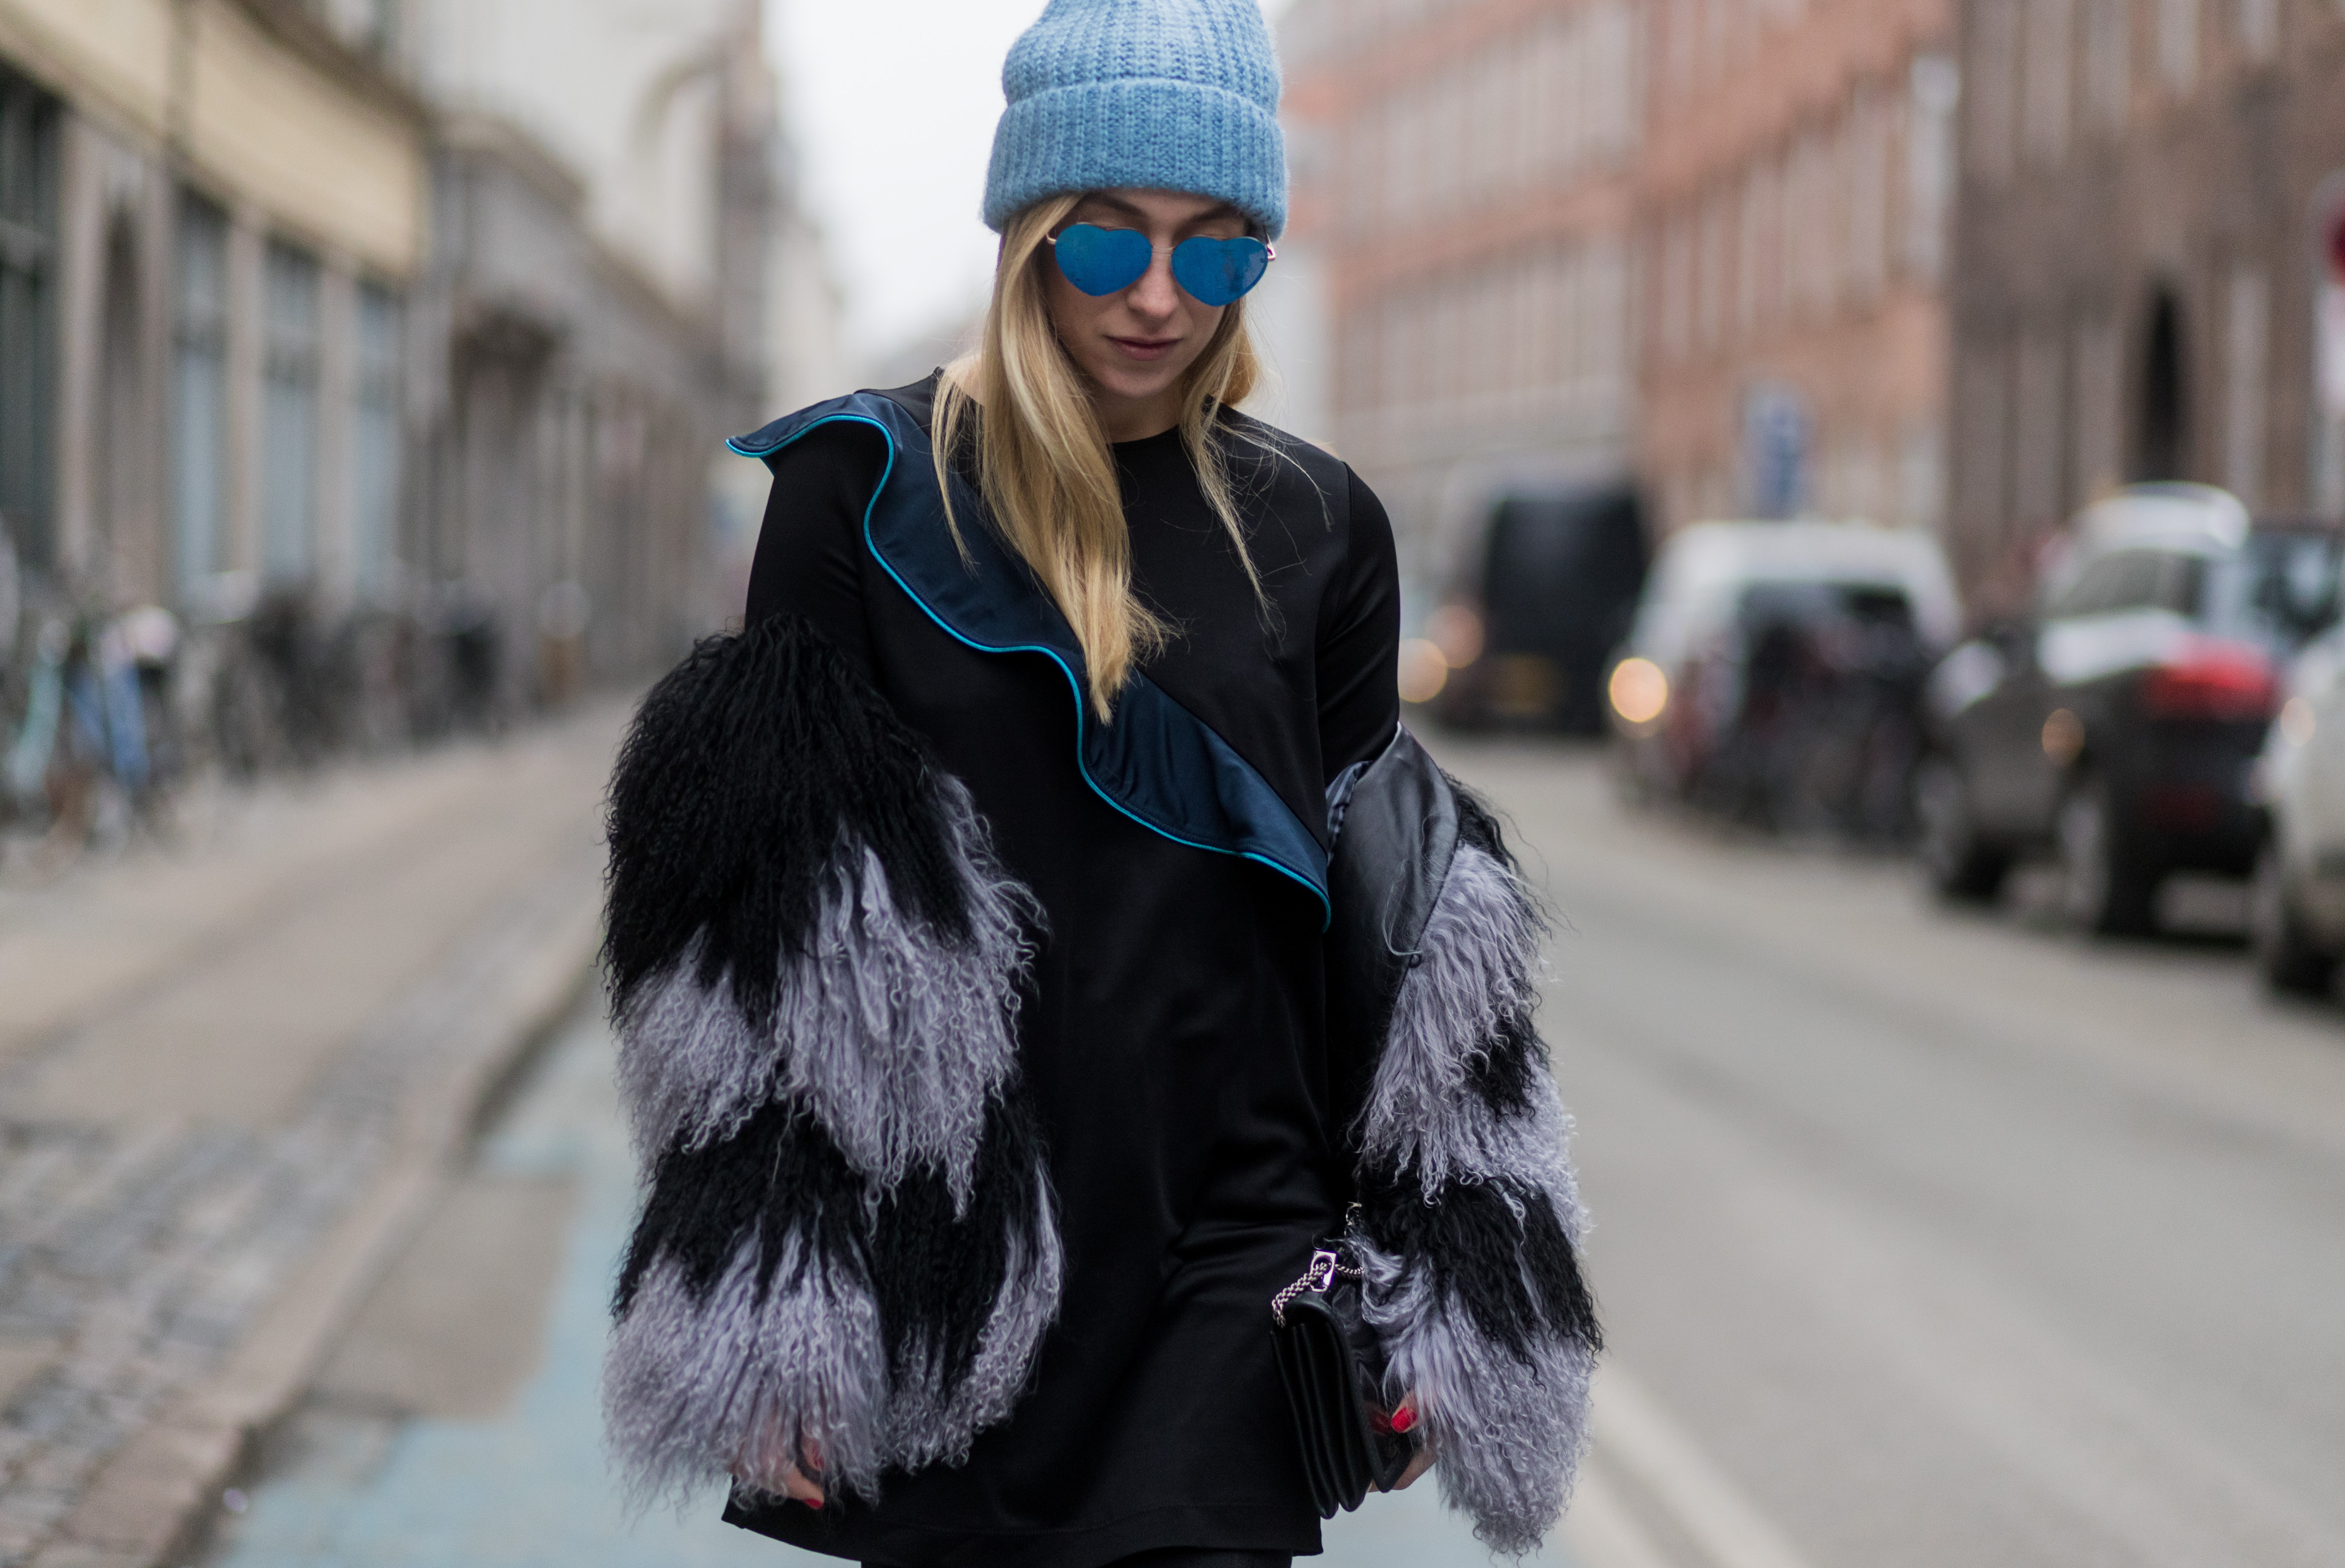 35 Tips On How to Care for Your Winter Clothes